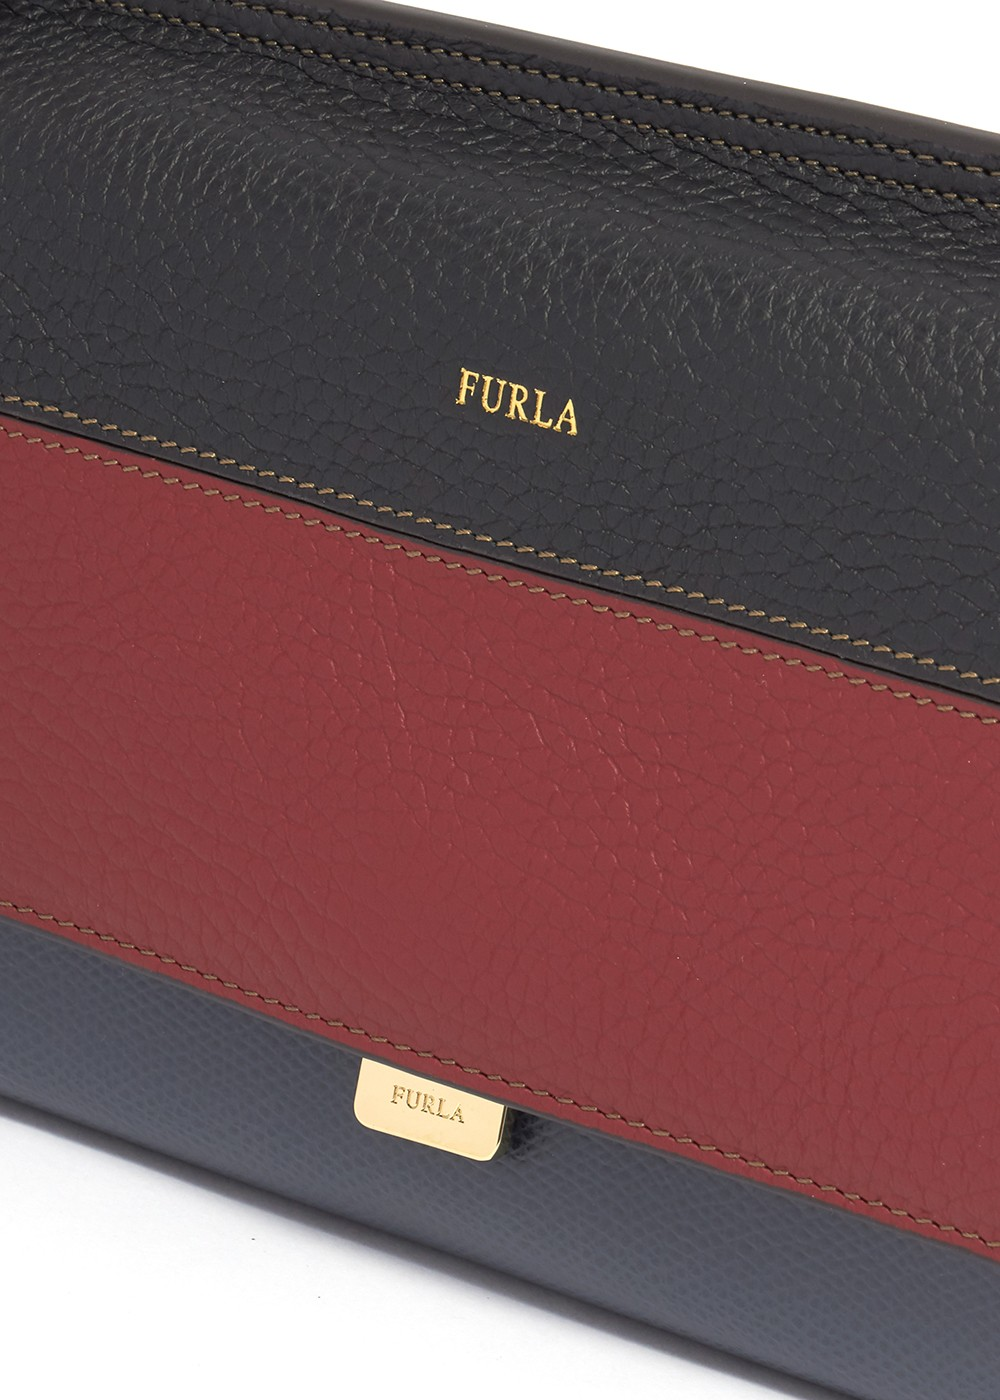 【最大57%OFF】【FURLA】LIKEショルダーバッグ|F38|ショルダーバッグ|2019 SPRING & SUMMER NEW ARRIVAL COLLECTION